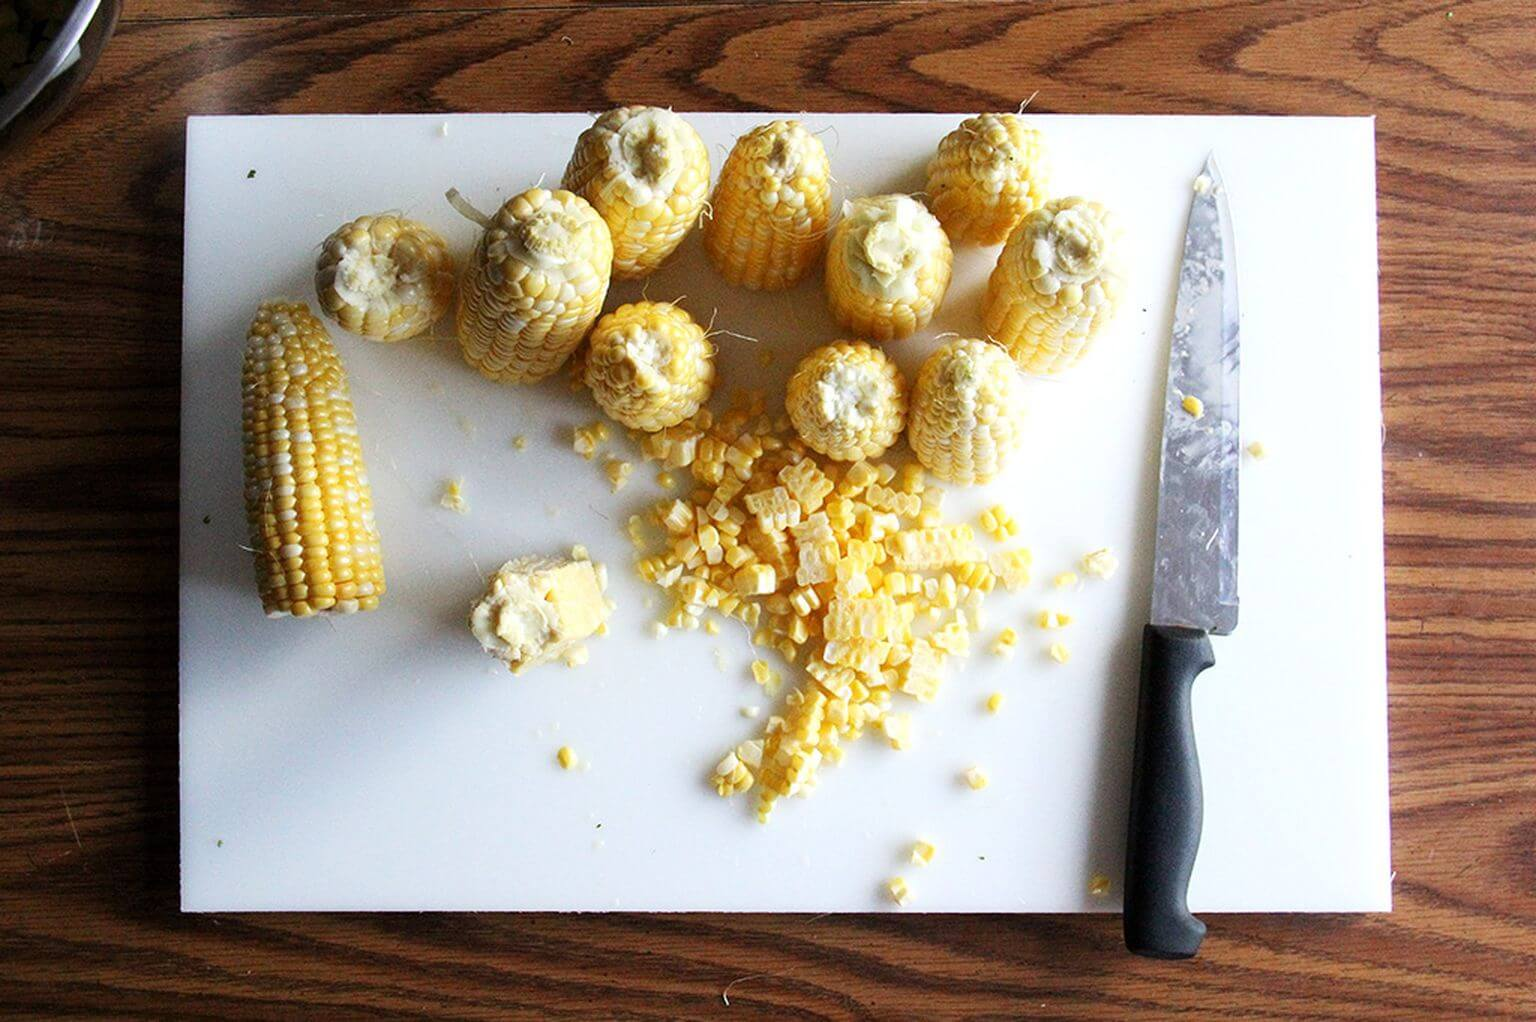 A cutting board with corn and stripped kernels and a knife.